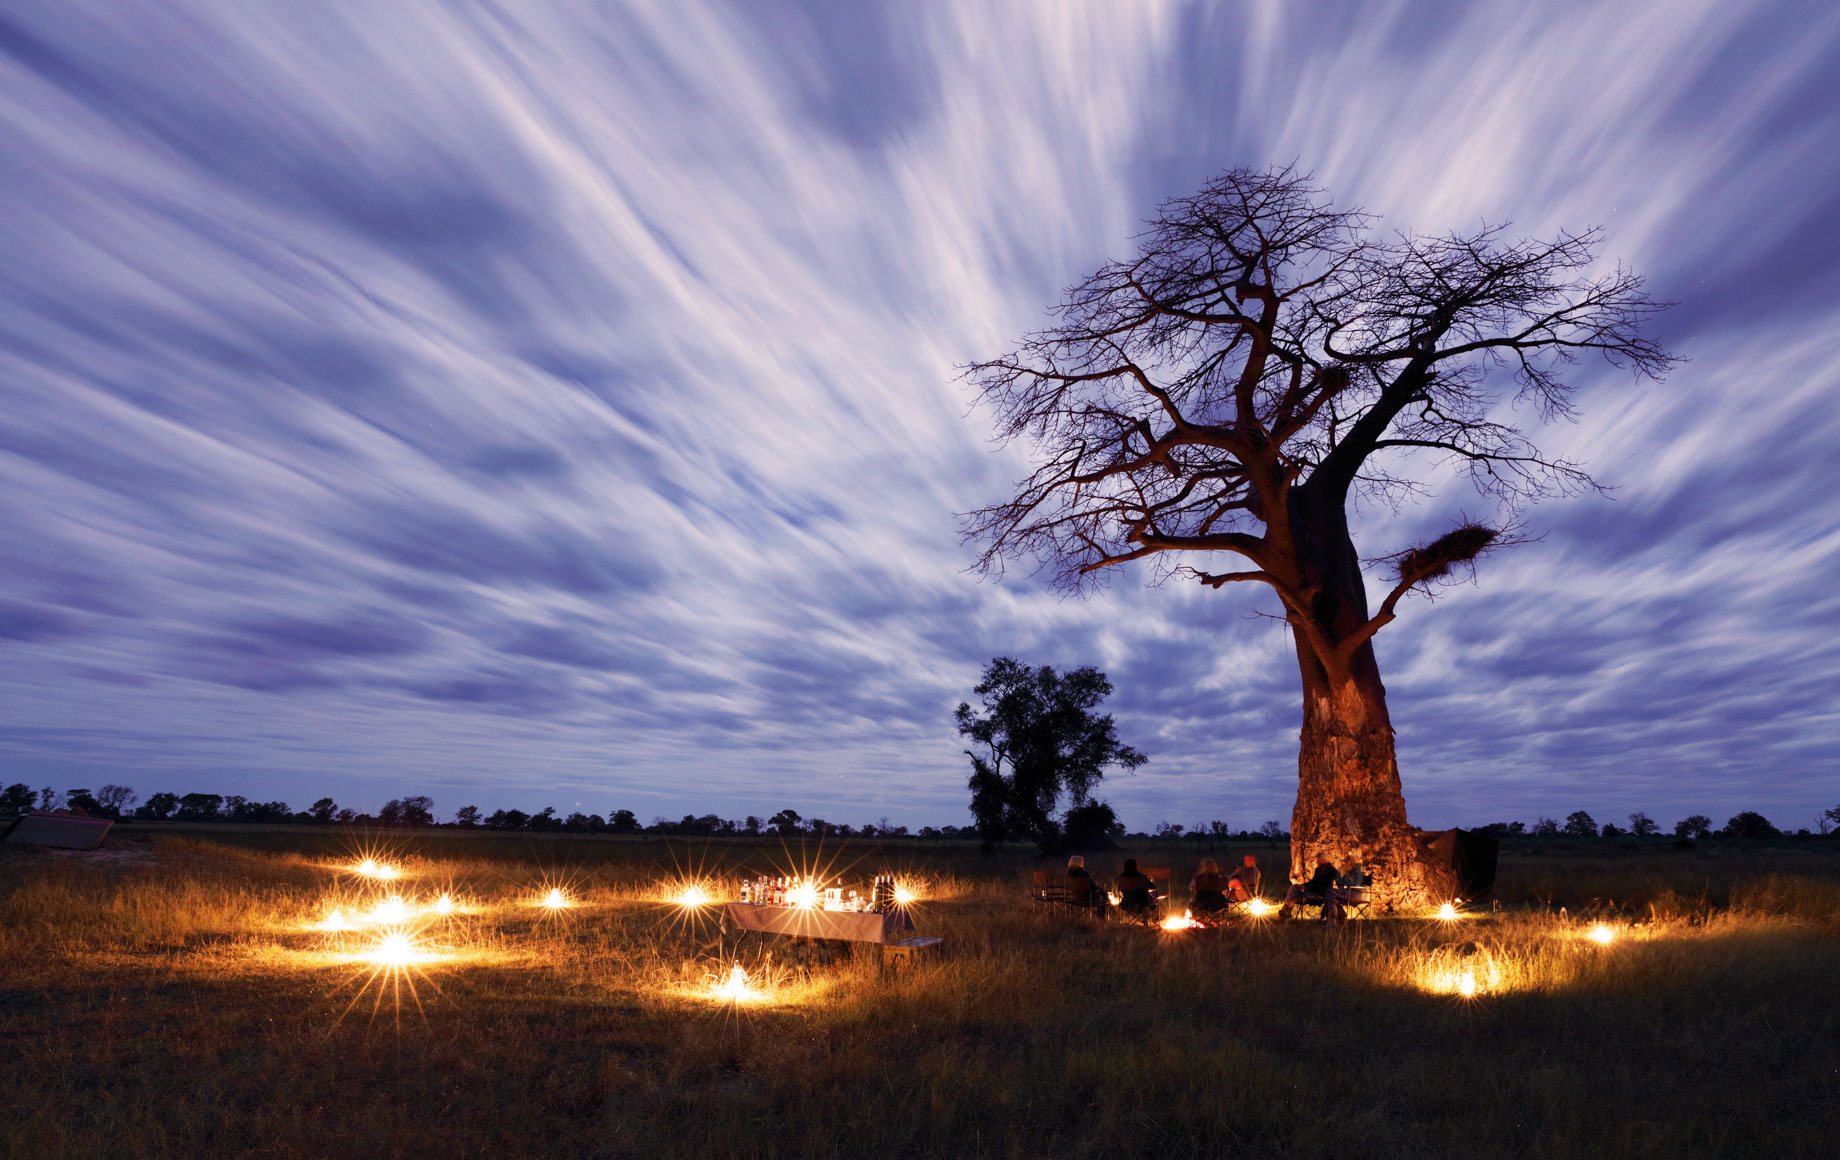 View of tree and clouds over Africa plain